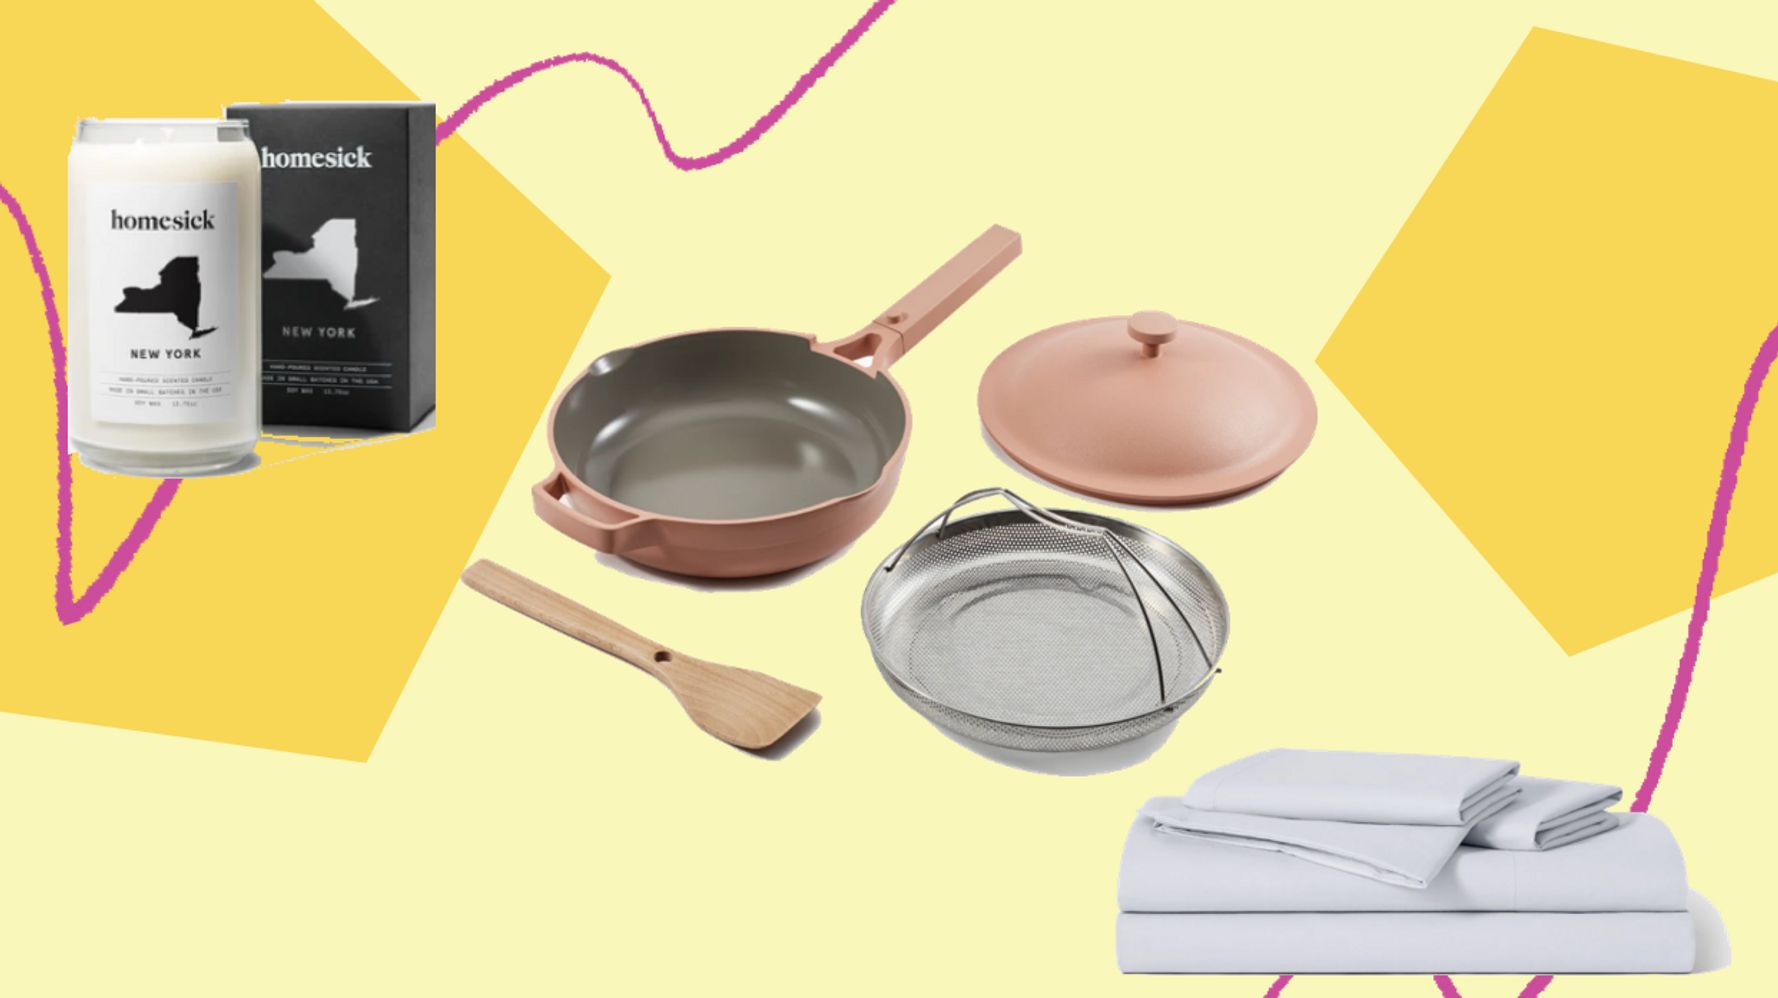 10 Prime Day Deals To Get Now And Gift Later This Holiday Season 1